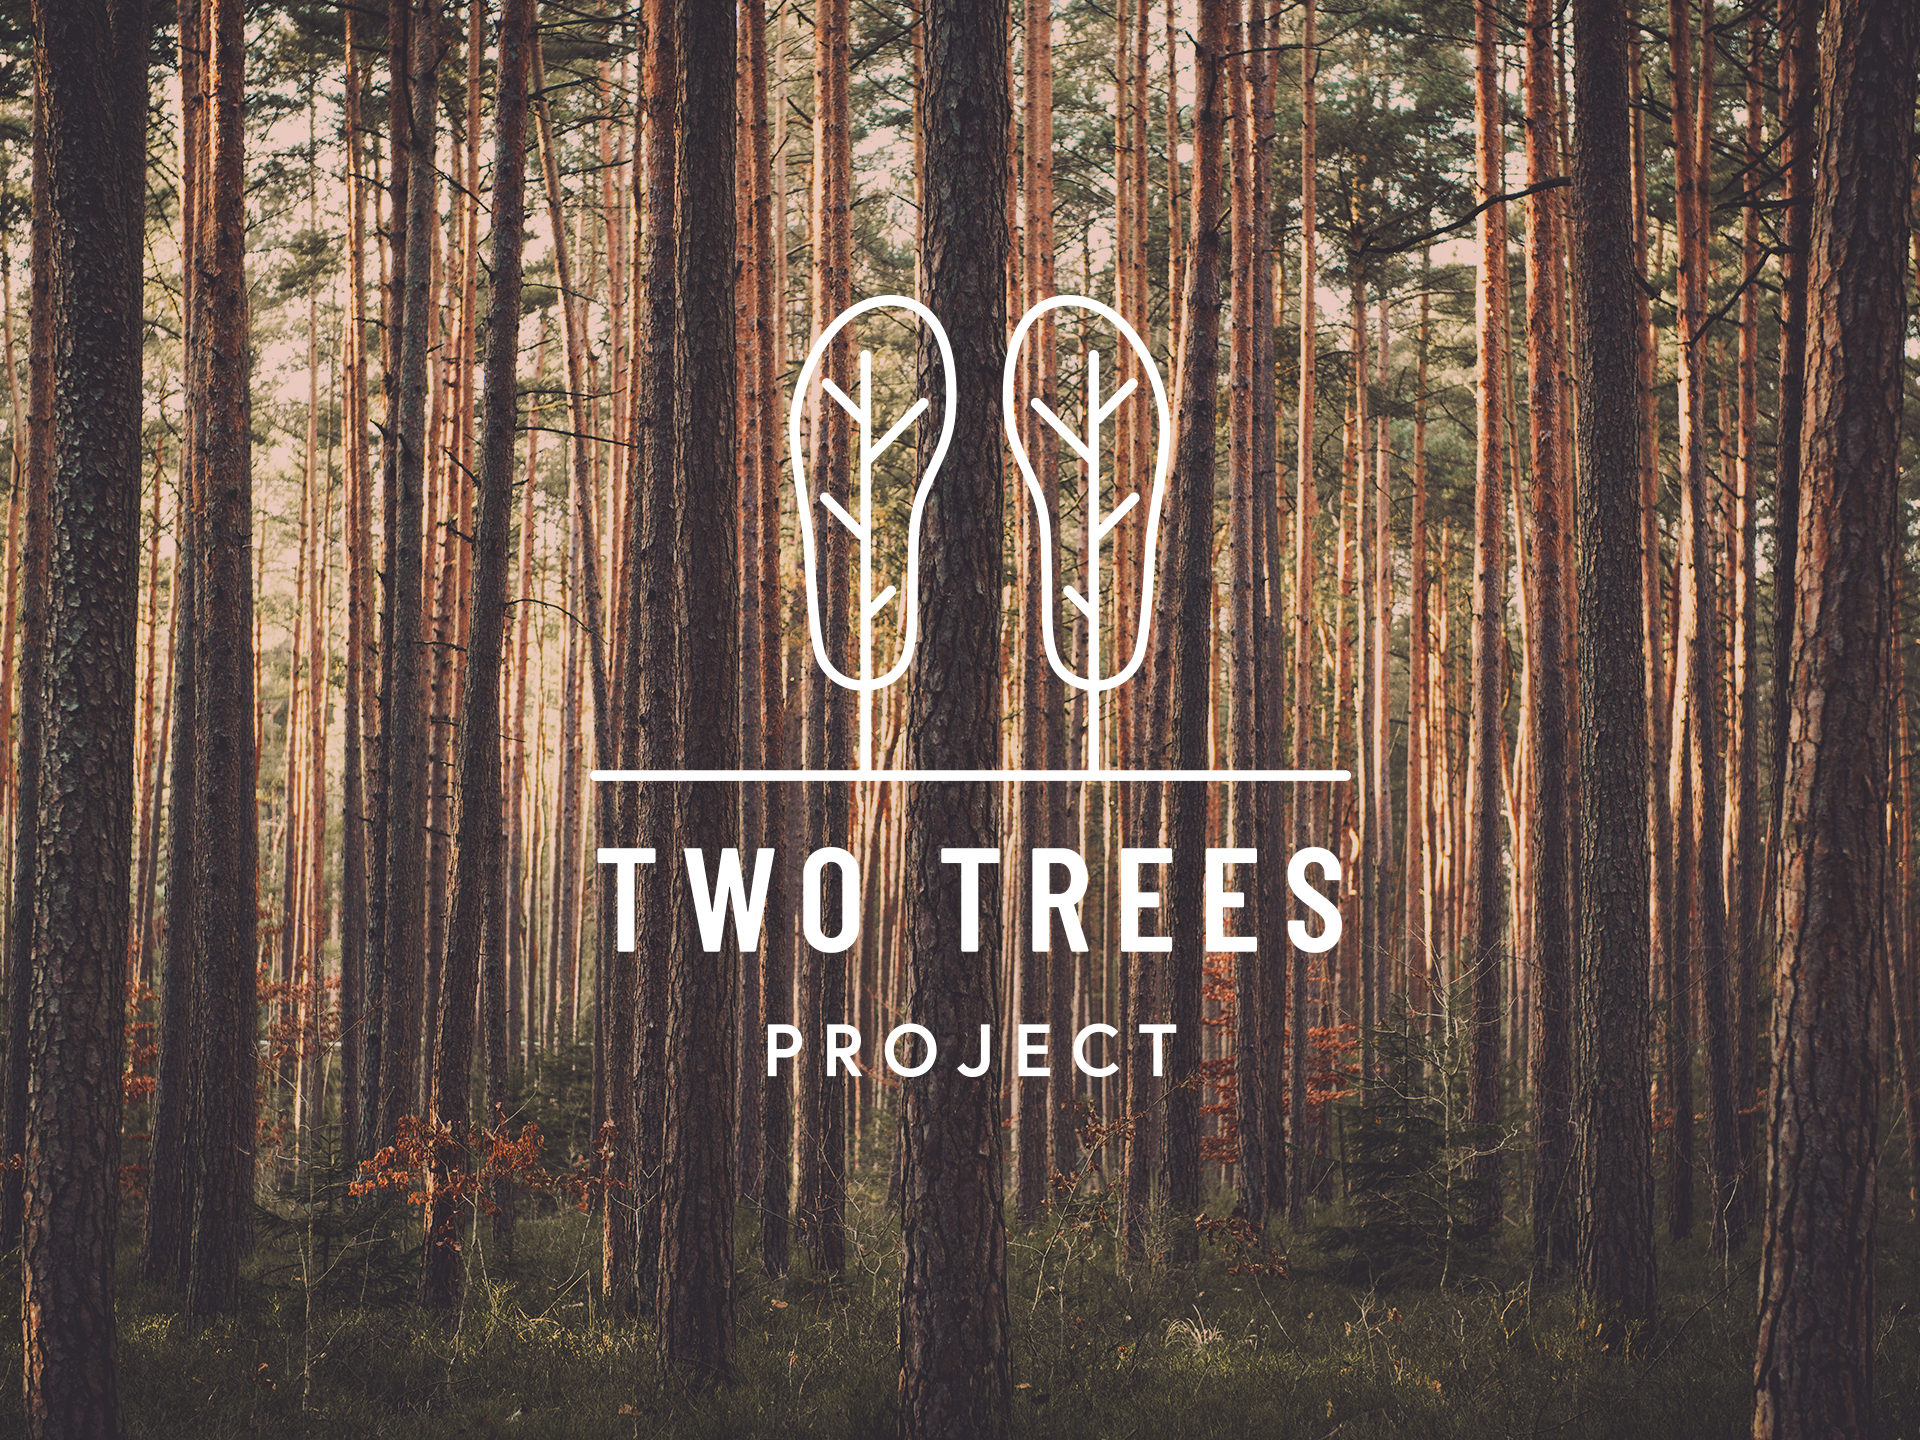 Our Footprint - For every pair of Hatty's we sell, we will plant one tree. One pair, two trees, soon a hatty forest.